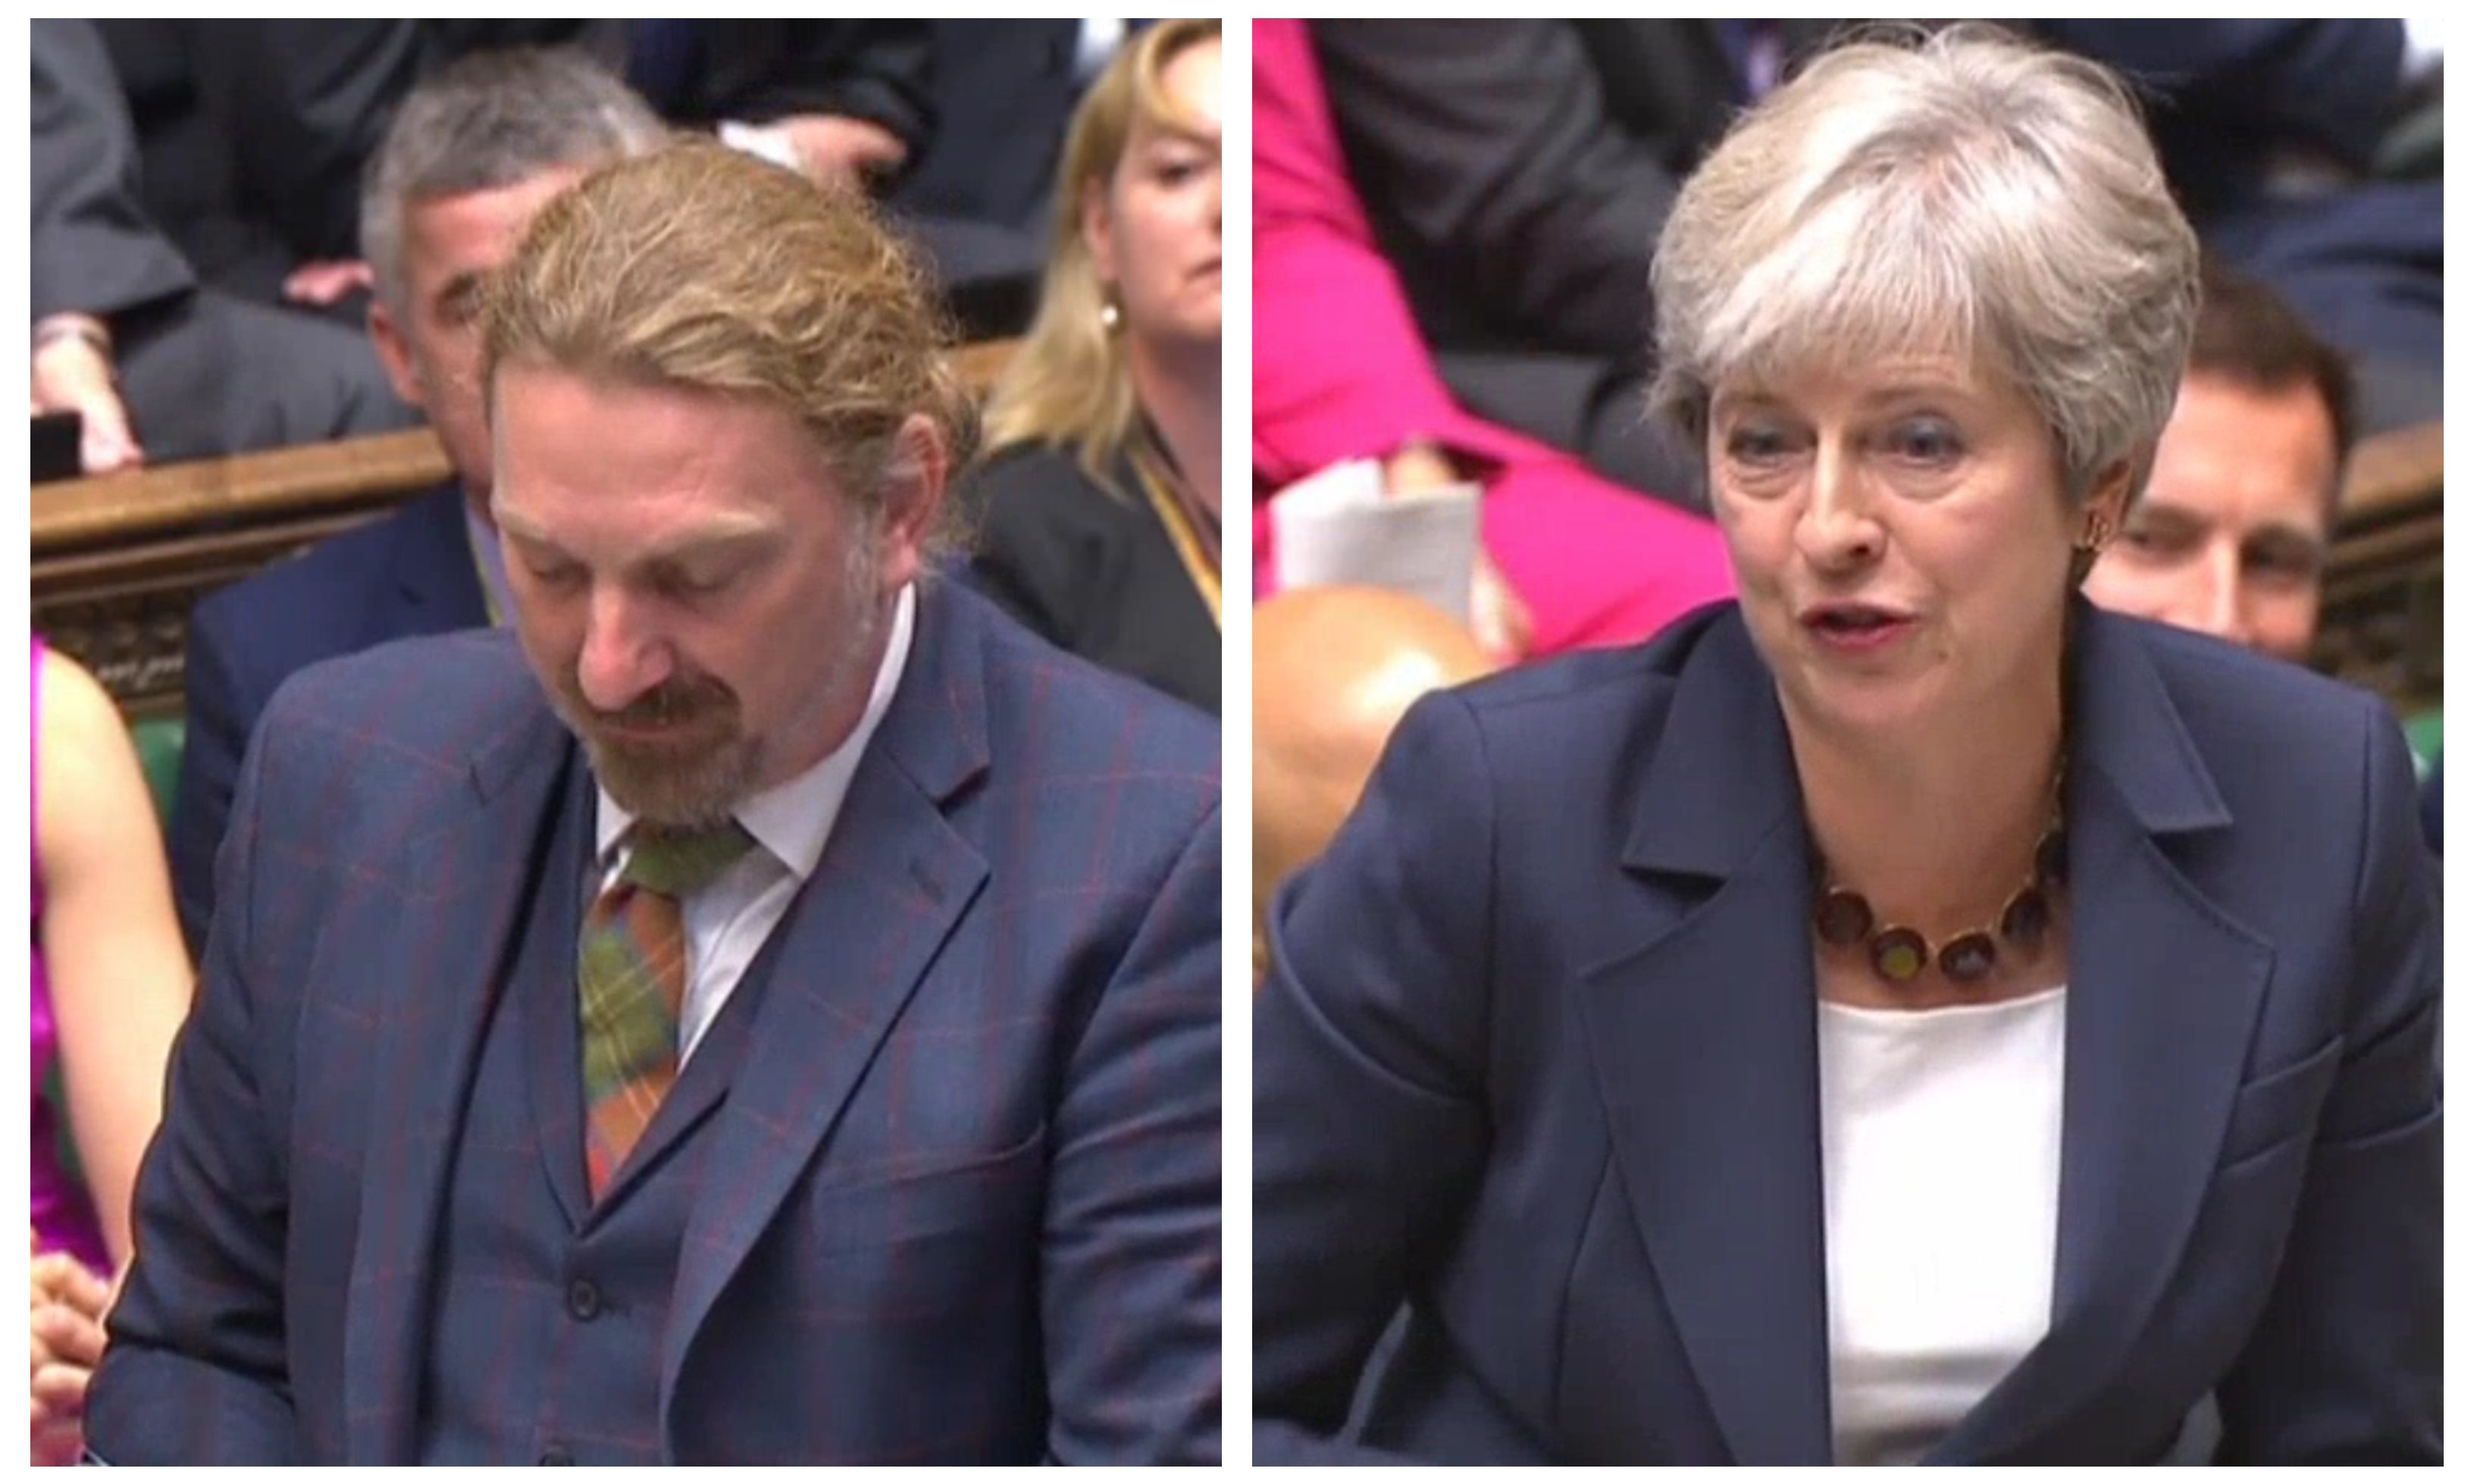 Chris Law and Theresa May during PMQs today.